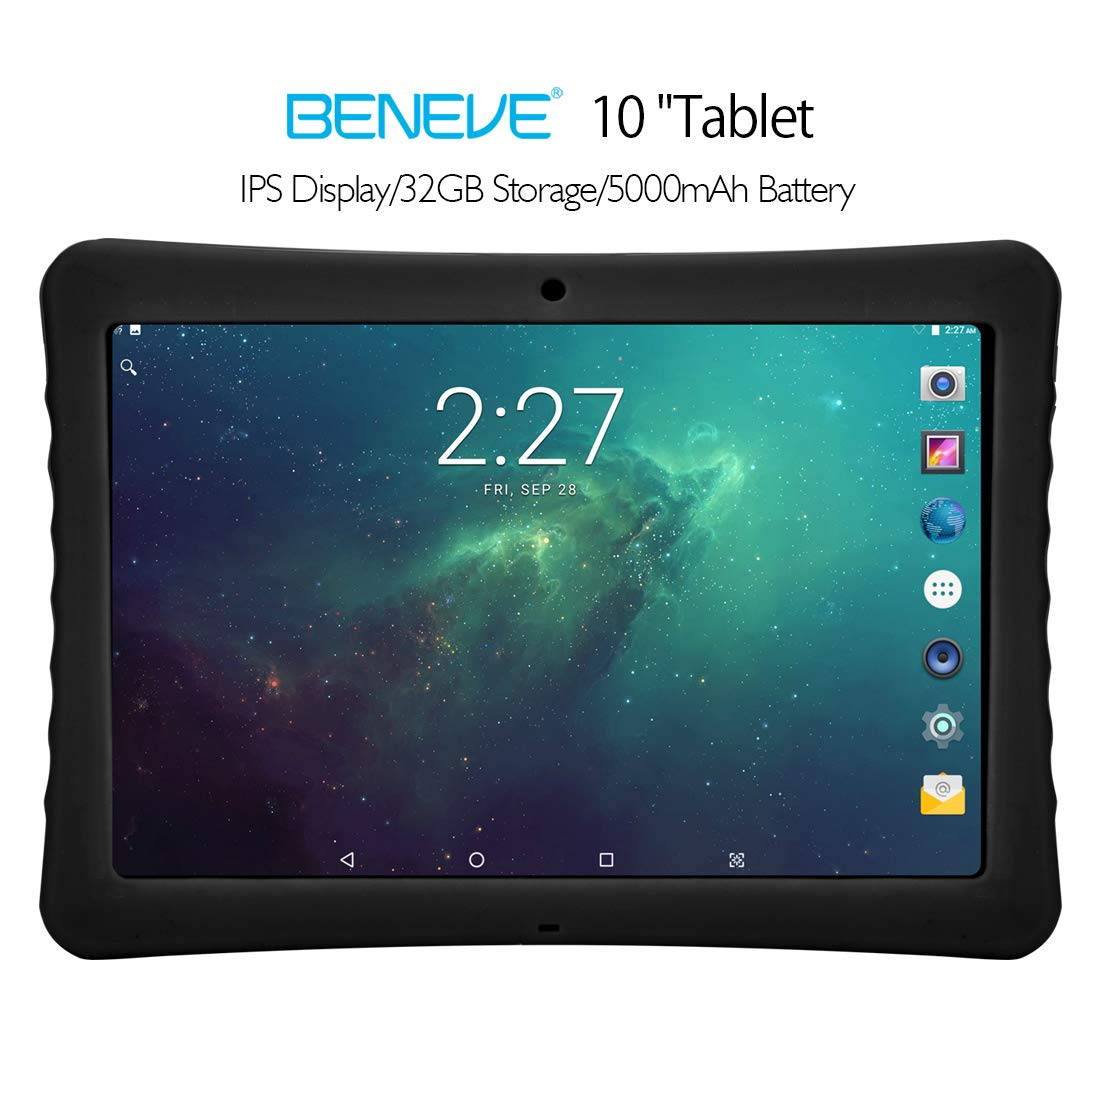 BENEVE 10 Tablet, 10.1'' 1920&1200 IPS Display, 2+32 GB, WiFi and Andriod System, Black - for Kids and Adult